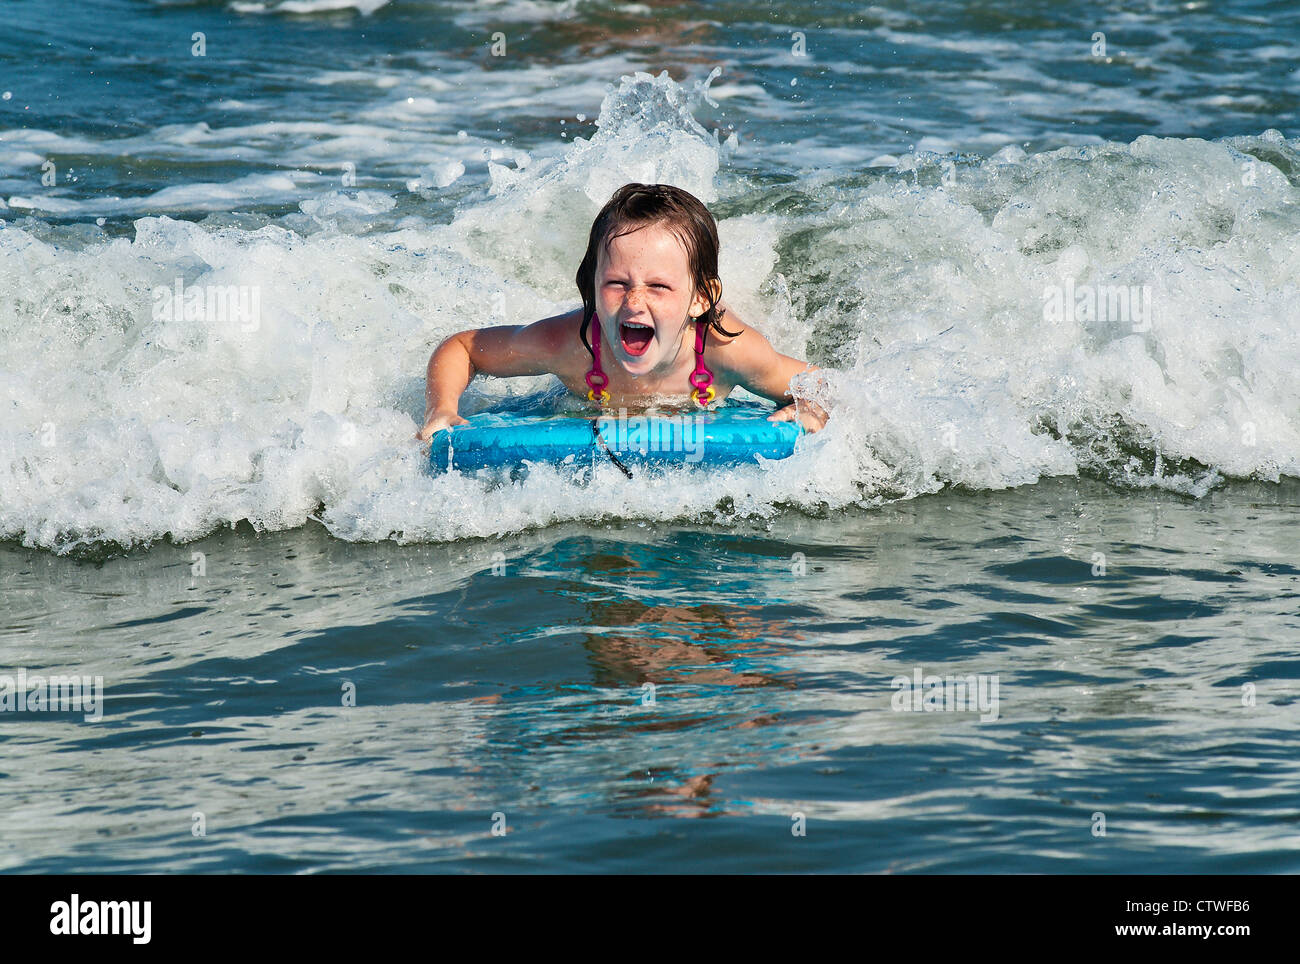 Young girl enjoys the ocean water. - Stock Image